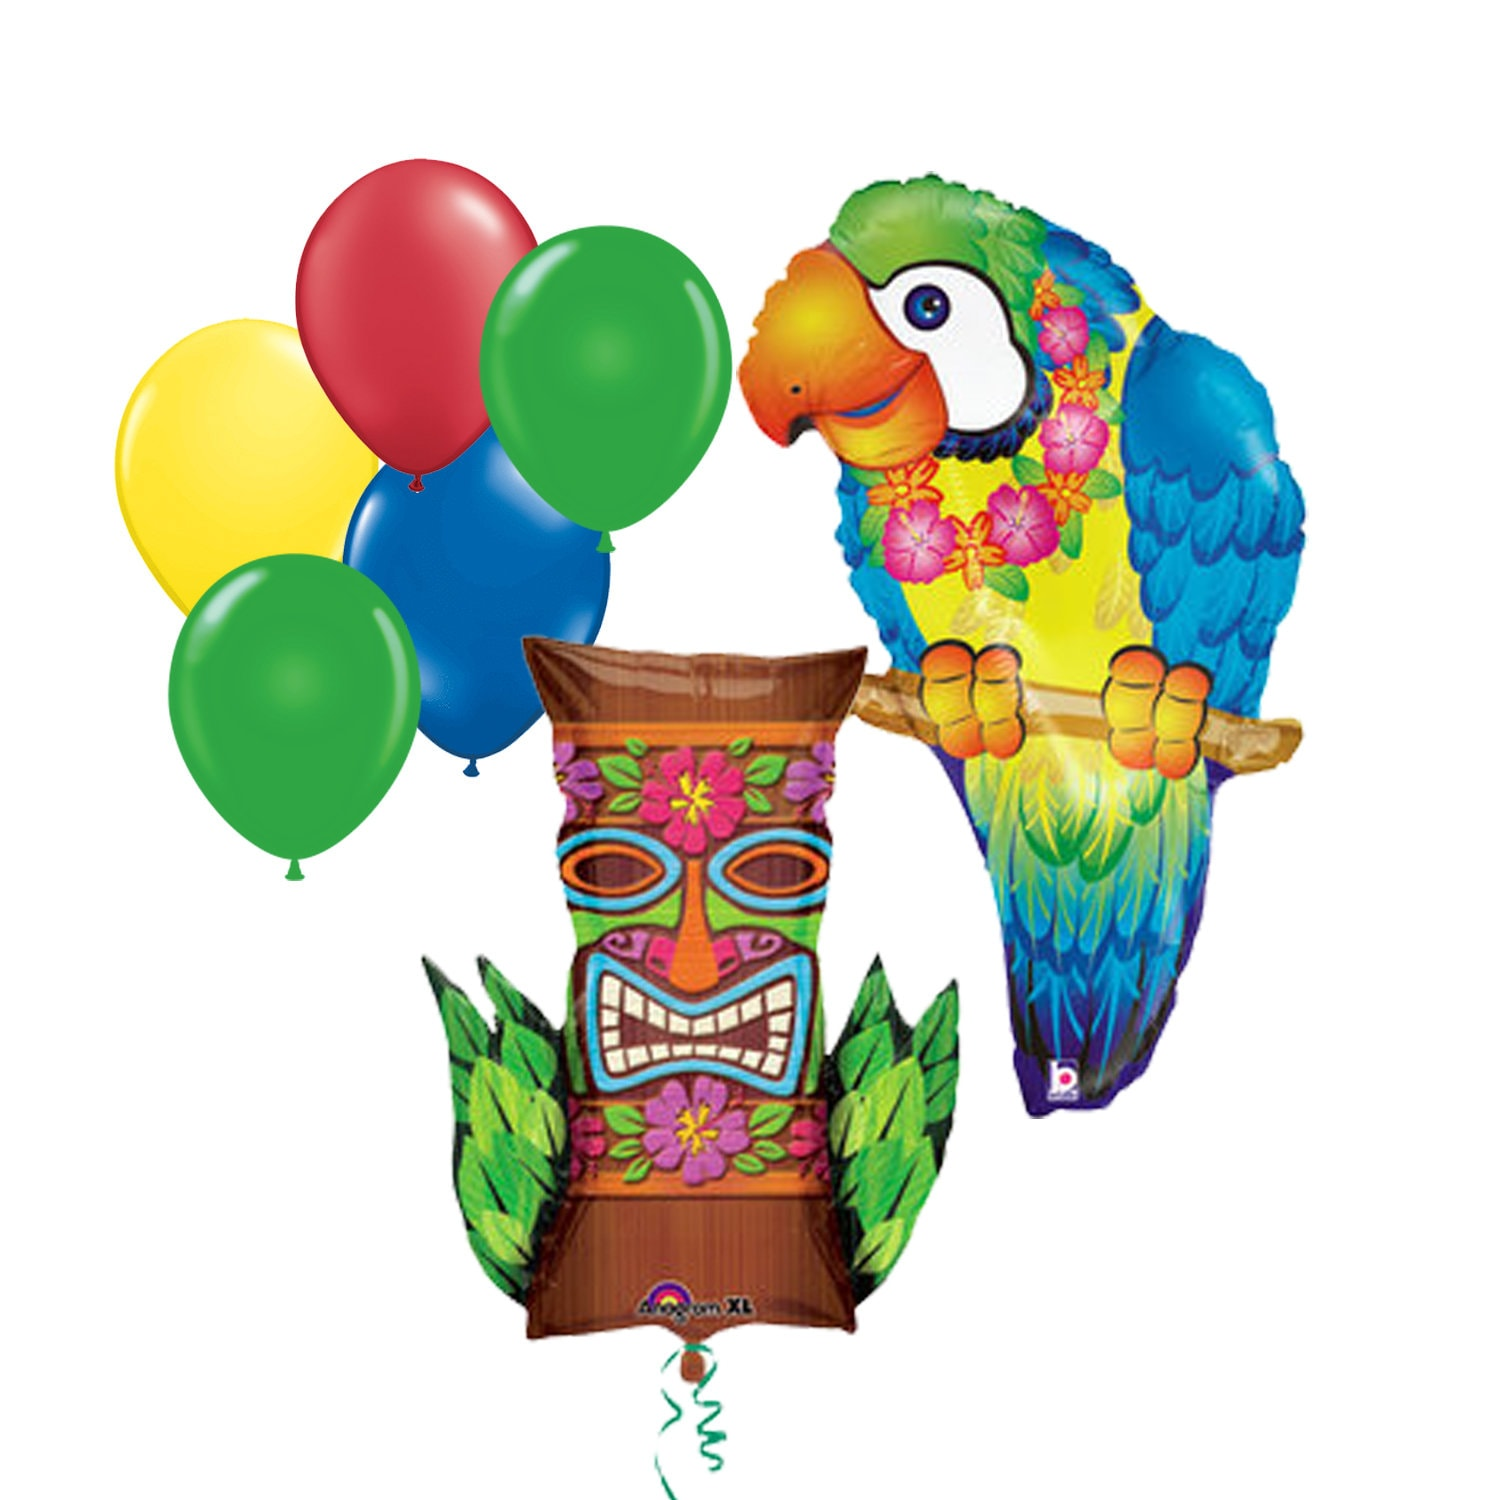 7pc Party Pack 35 Inch Tropical Parrot Tiki Island Mylar Latex Animal Balloon Kit Helium Supplies Decor Large Supply